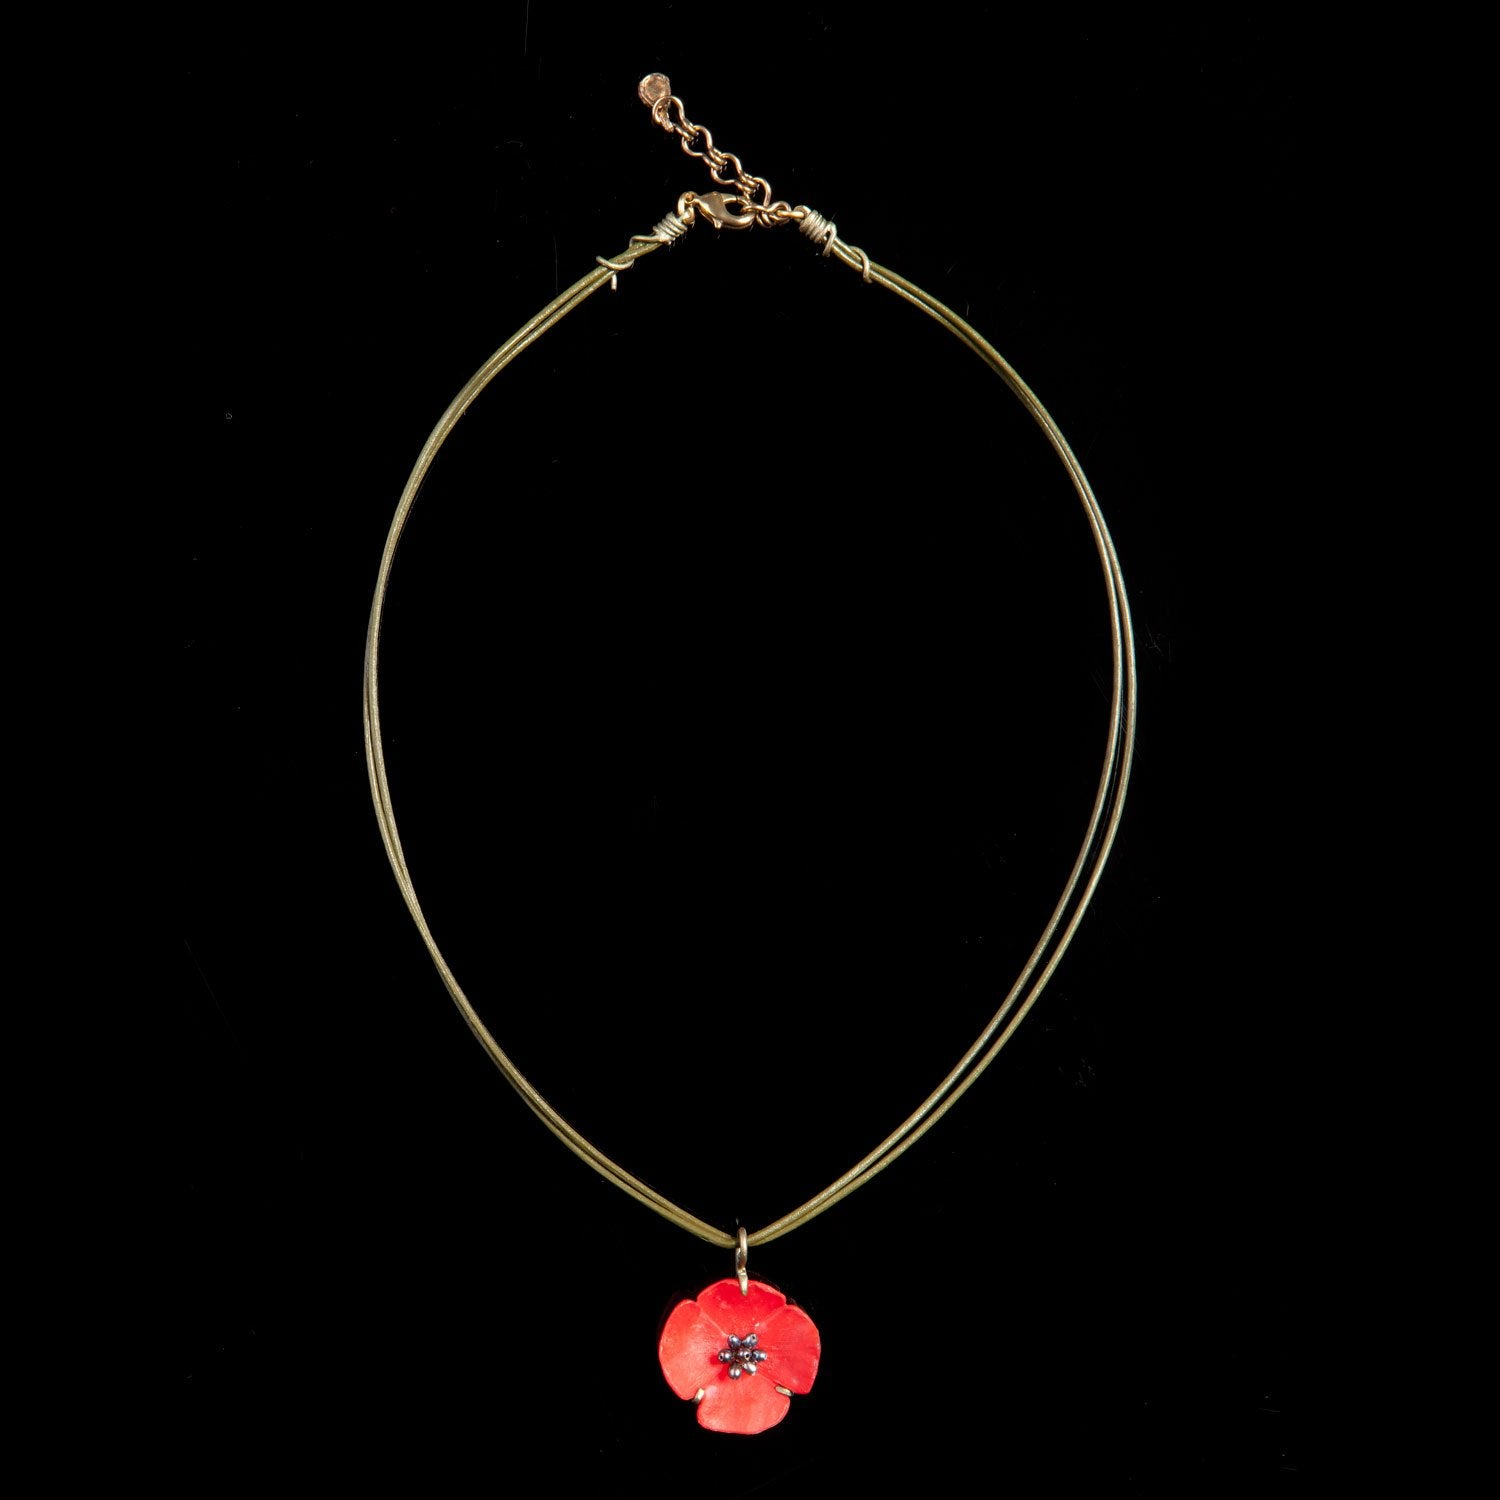 Red Poppy Pendant - Leather Cord